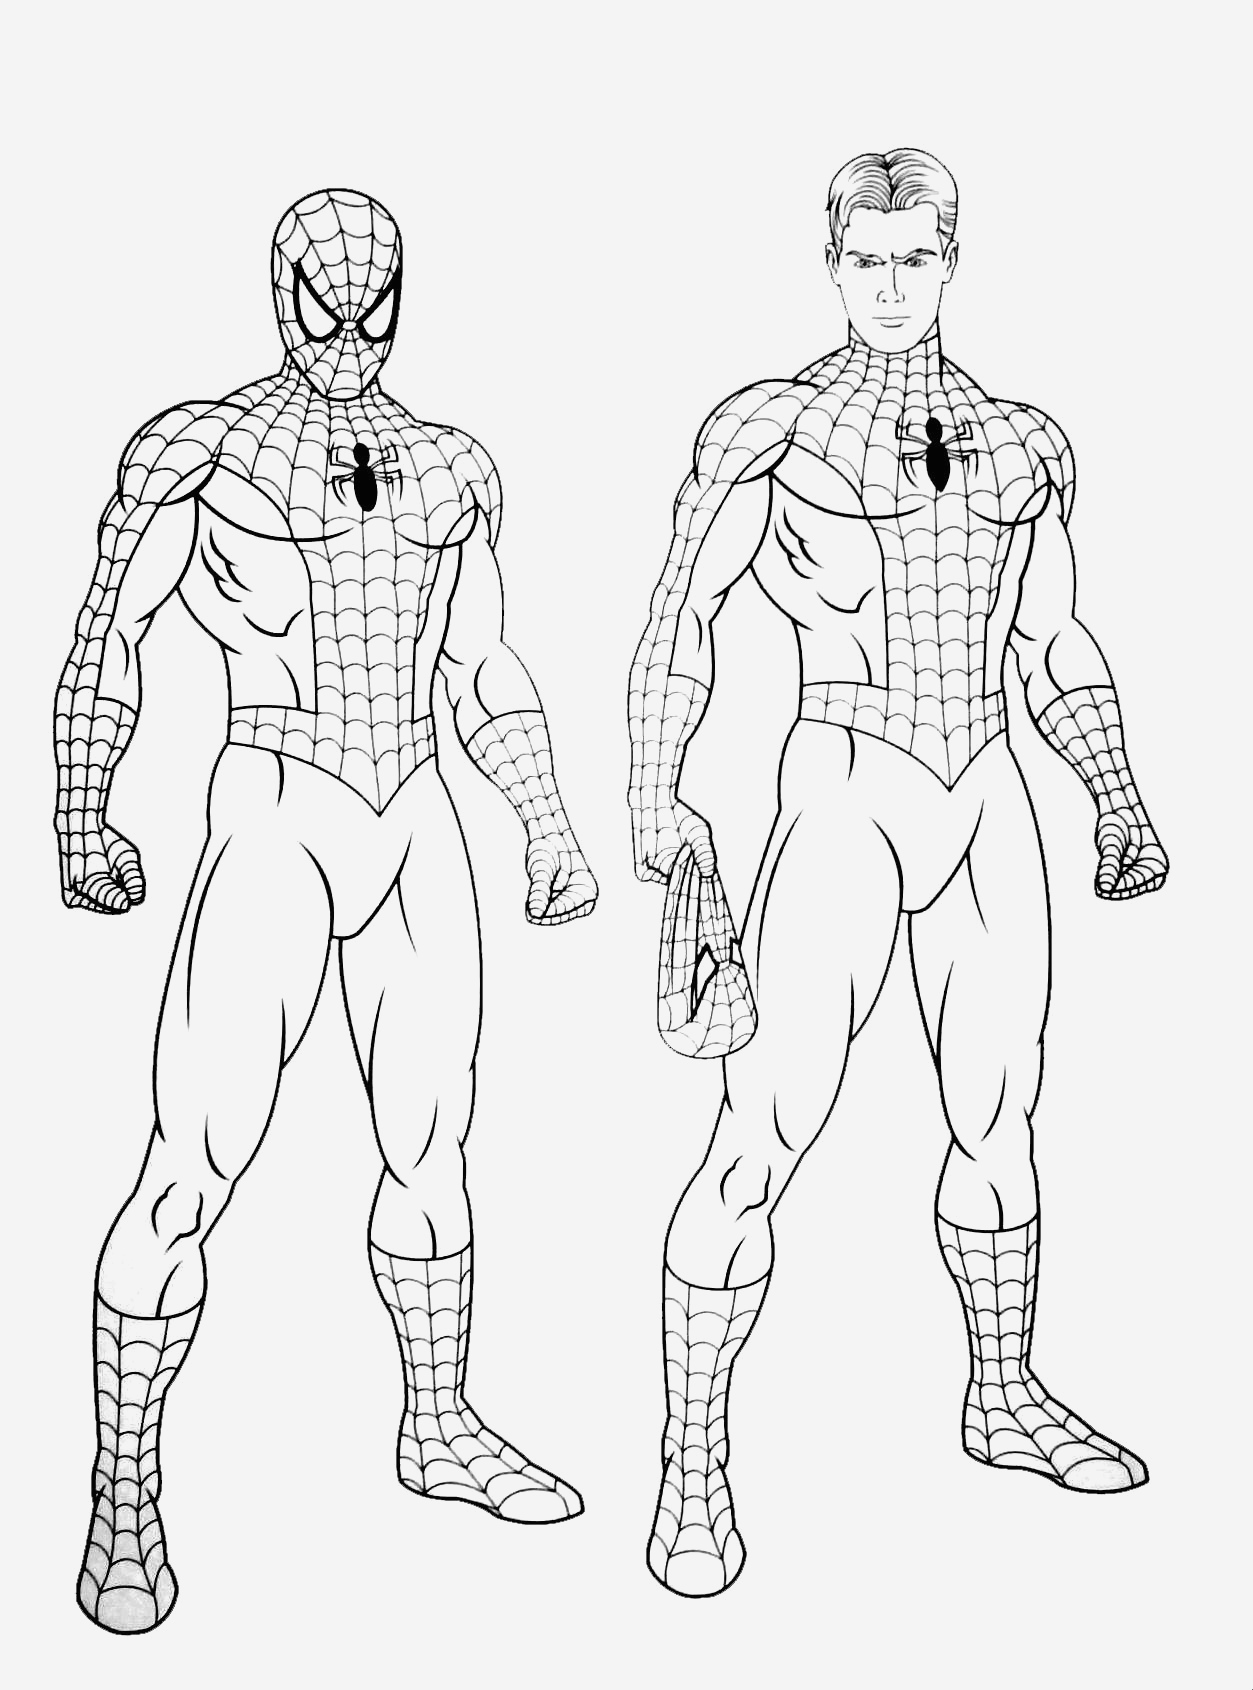 Coloriage De Spiderman Awesome Spiderman Free to Color for Kids Spiderman Kids Coloring Pages Of Coloriage De Spiderman